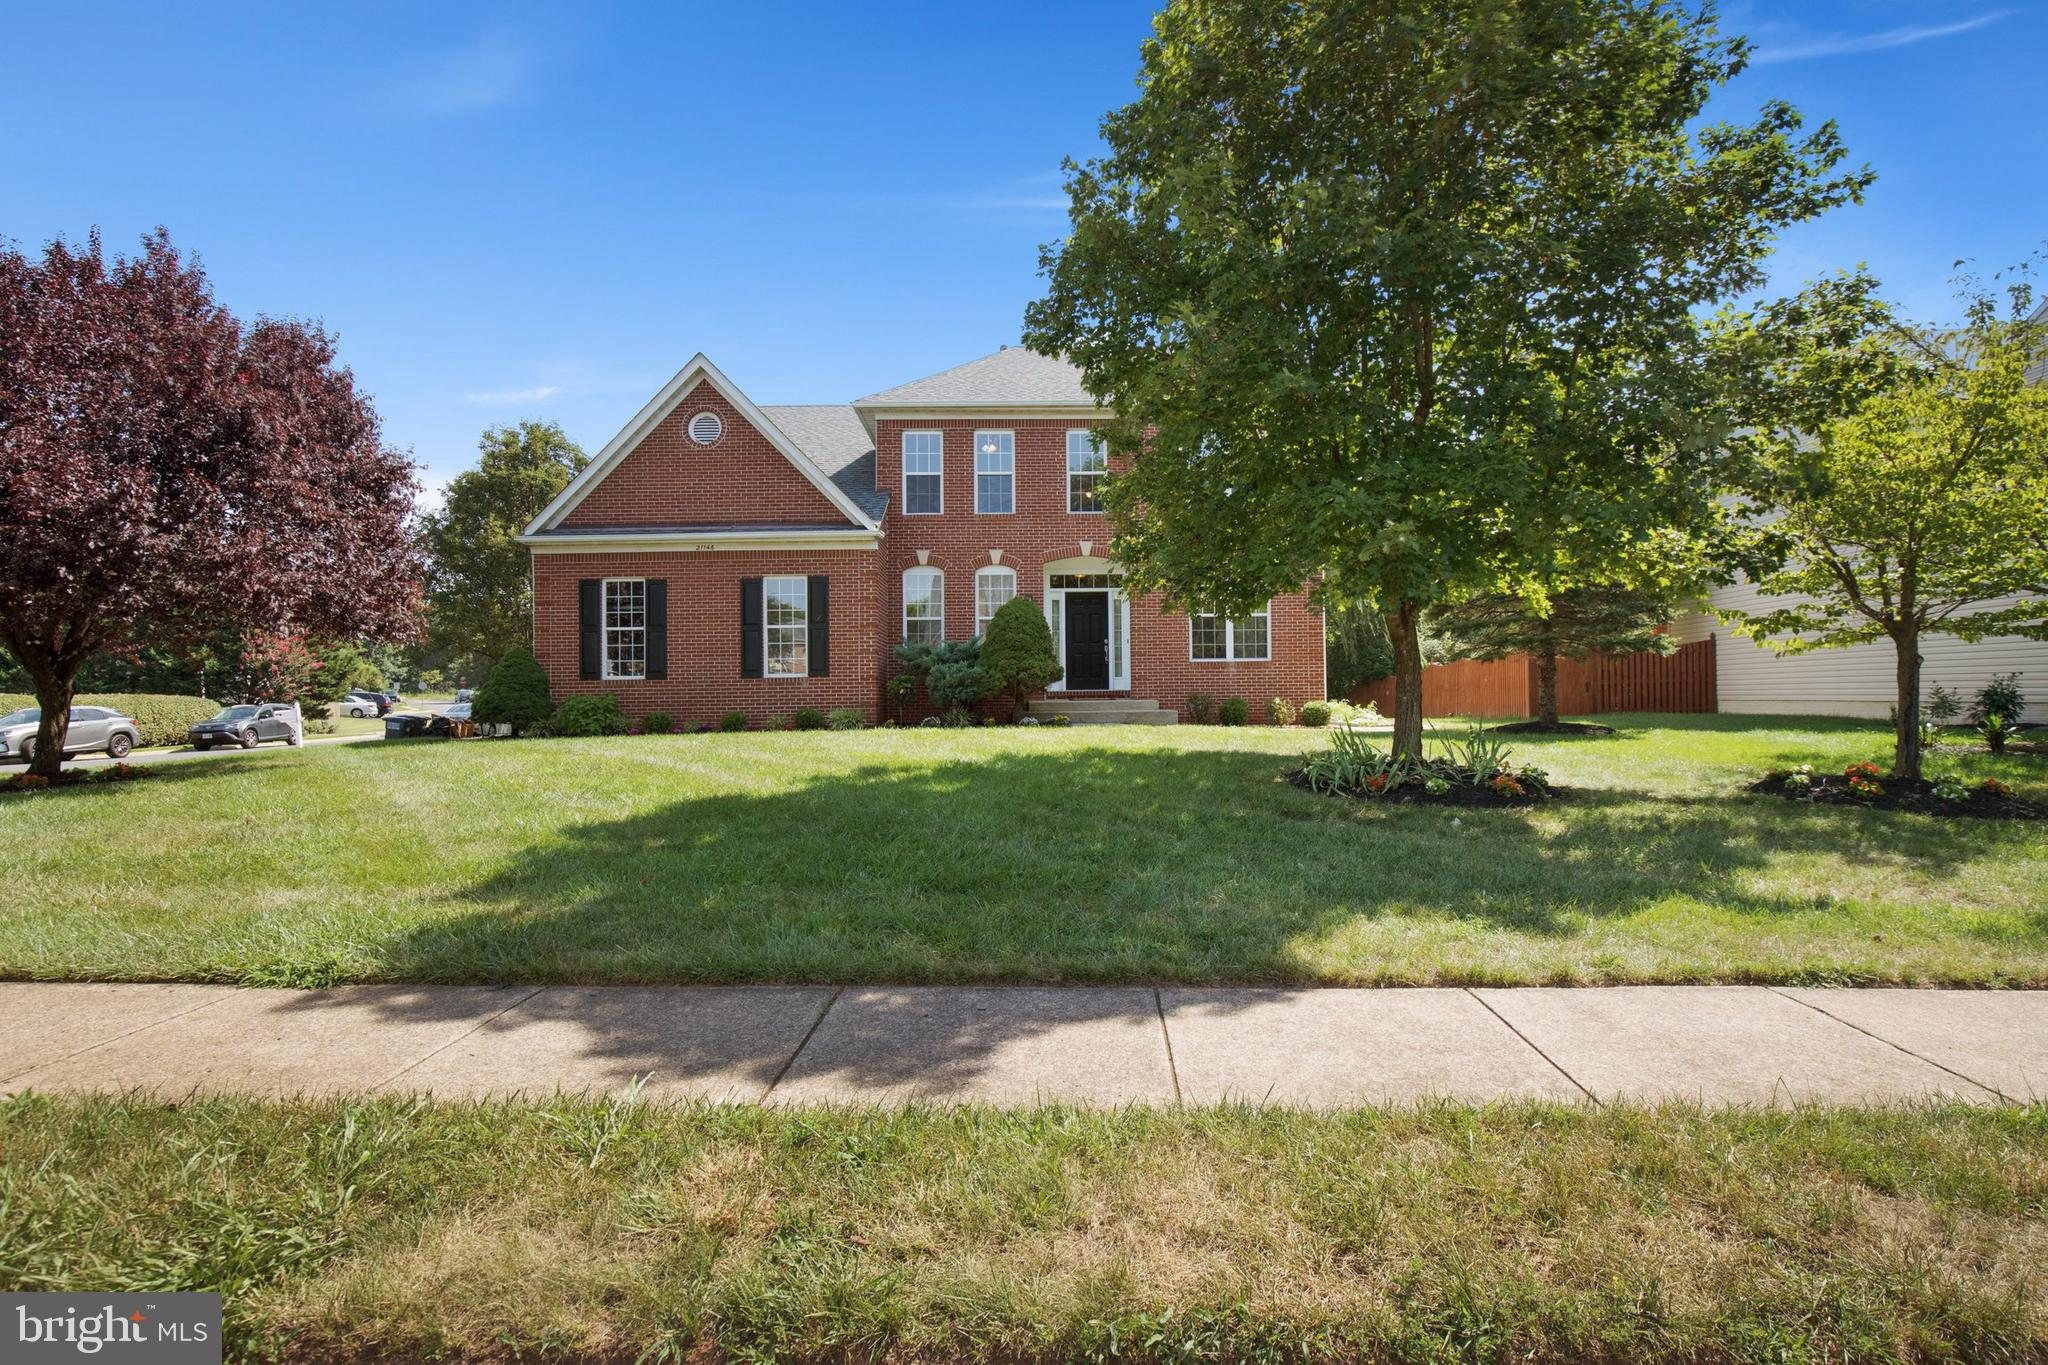 Welcome home to this stately and well-maintained 4 bedroom, 3.5 bath colonial in the highly sought-a